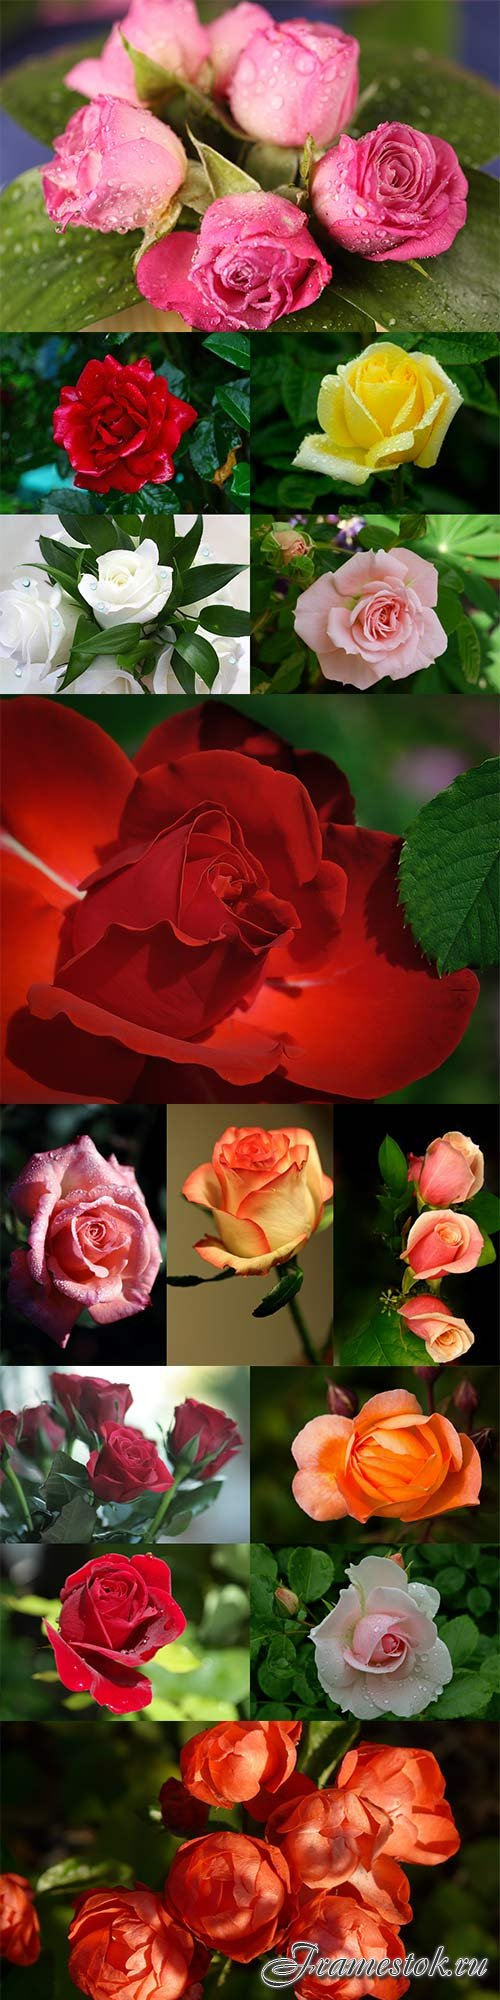 Stunning beautiful roses